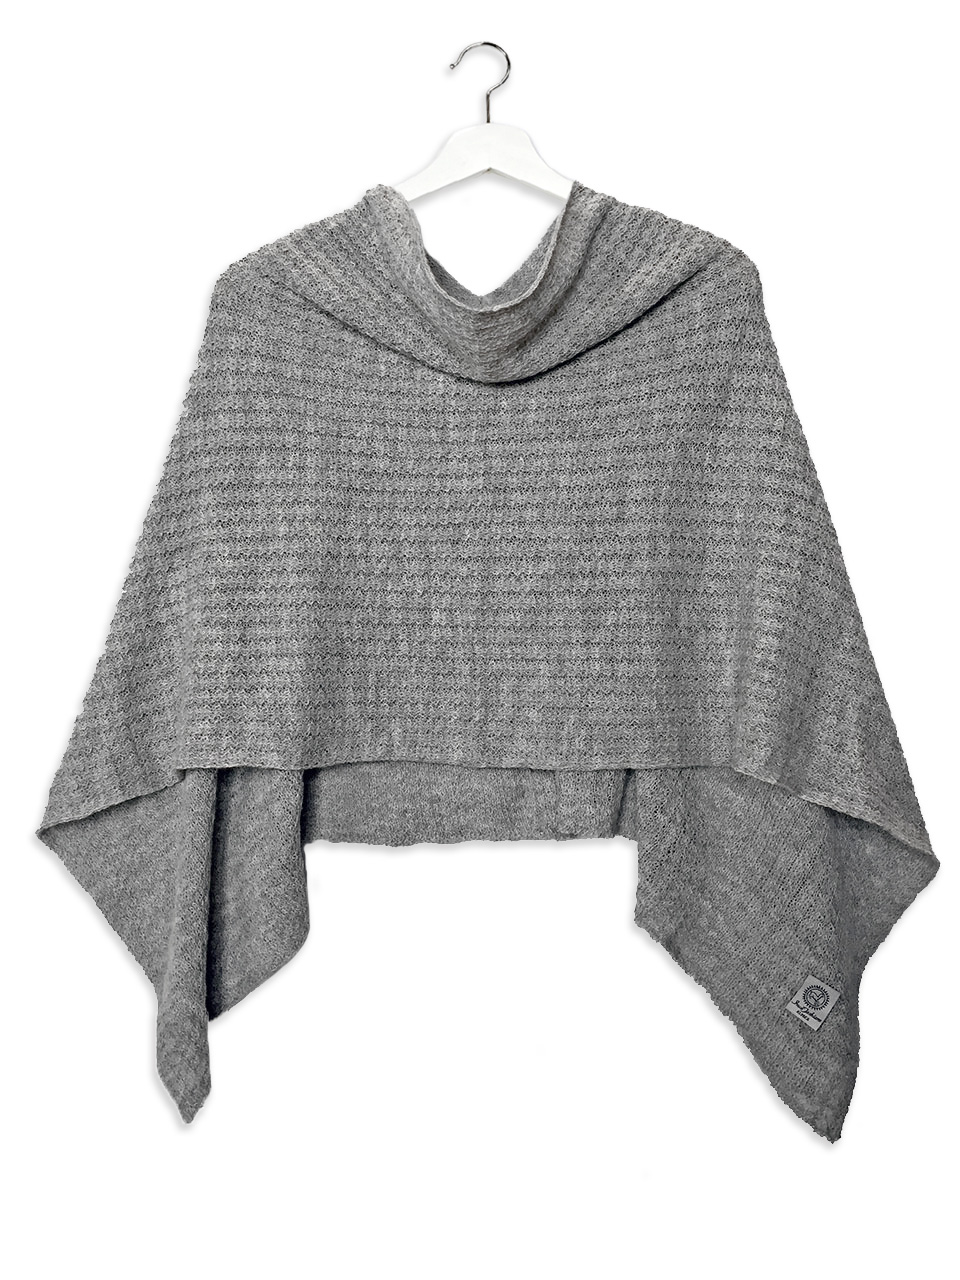 Malibu Alpaca Cable Poncho Worn as cape